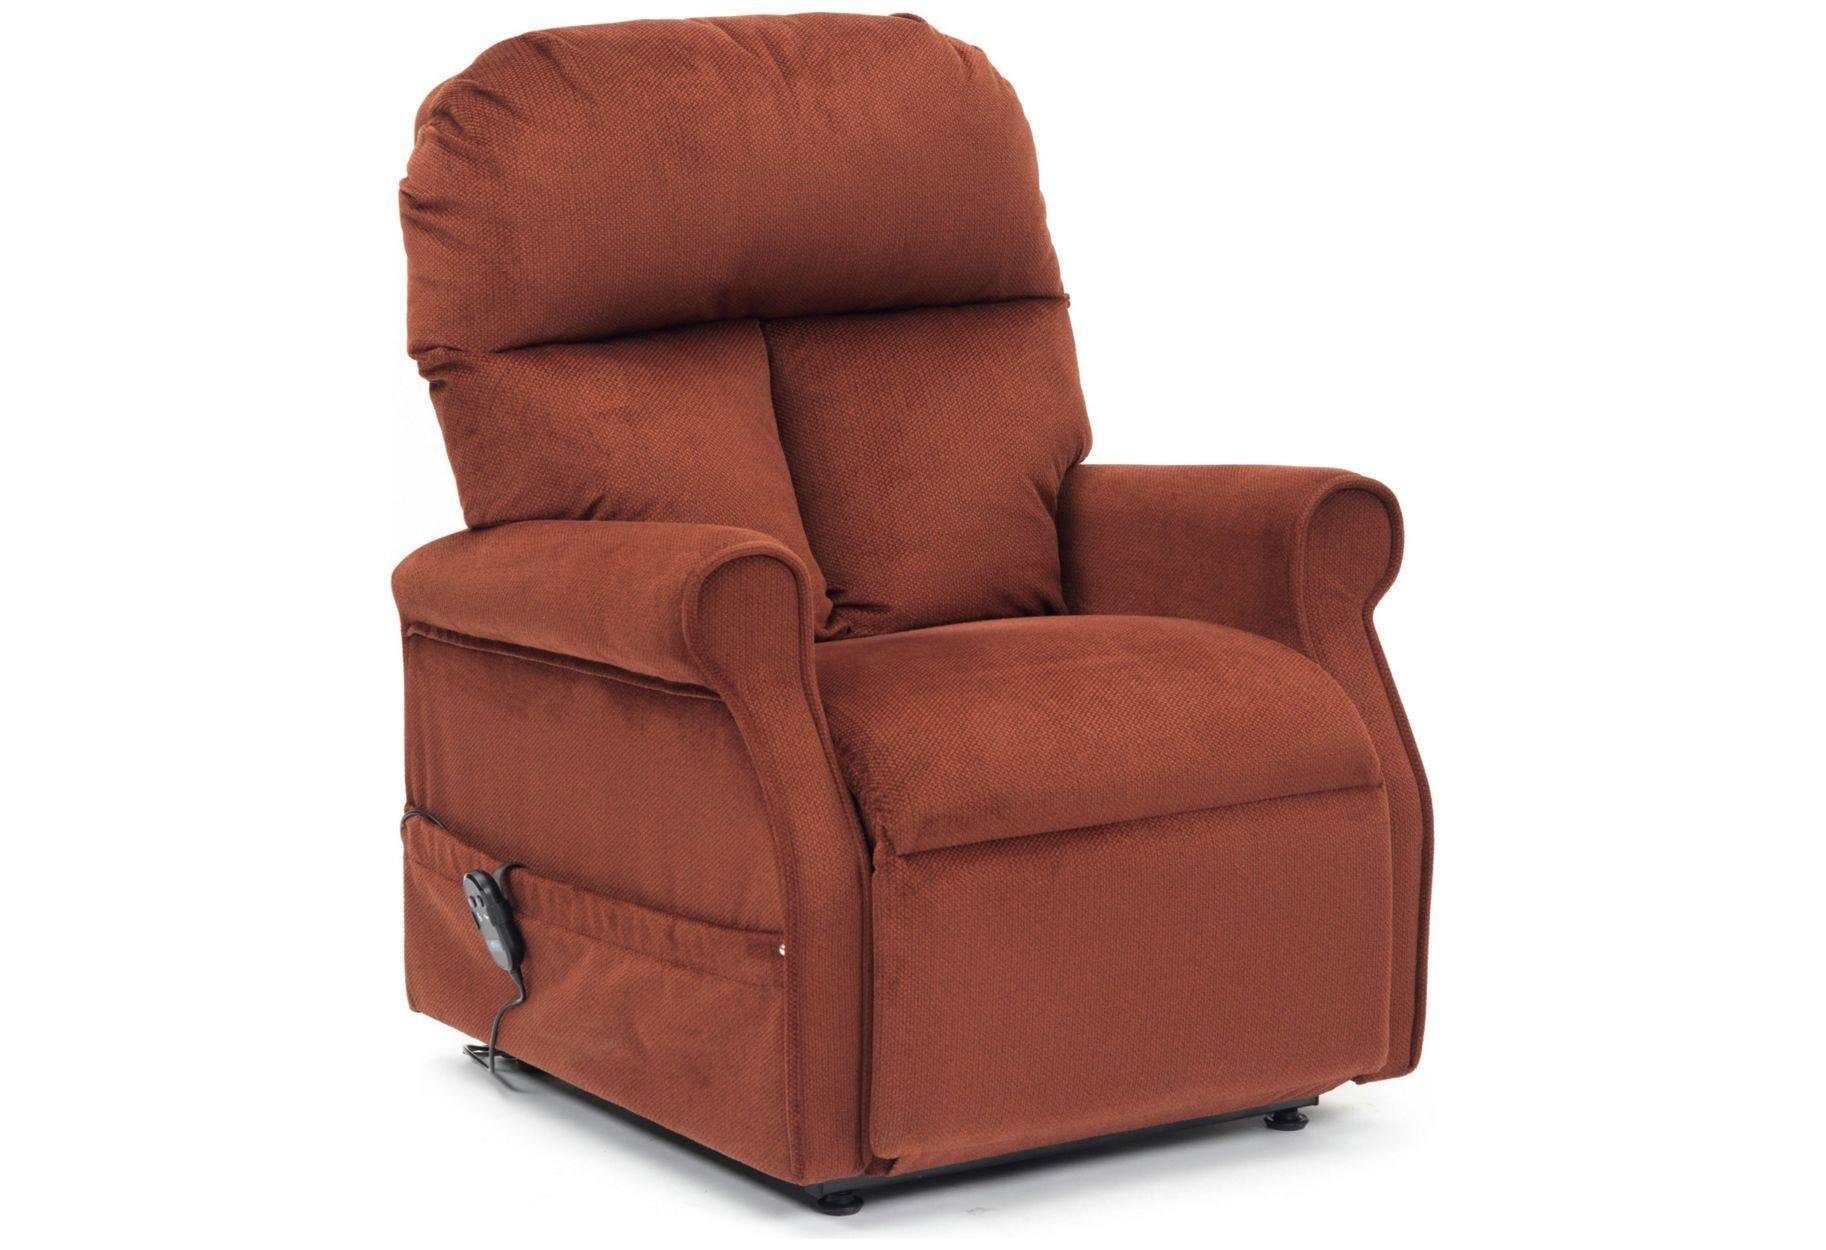 Image of Boston Riser Recliner Chair with Single Motor - Russet.